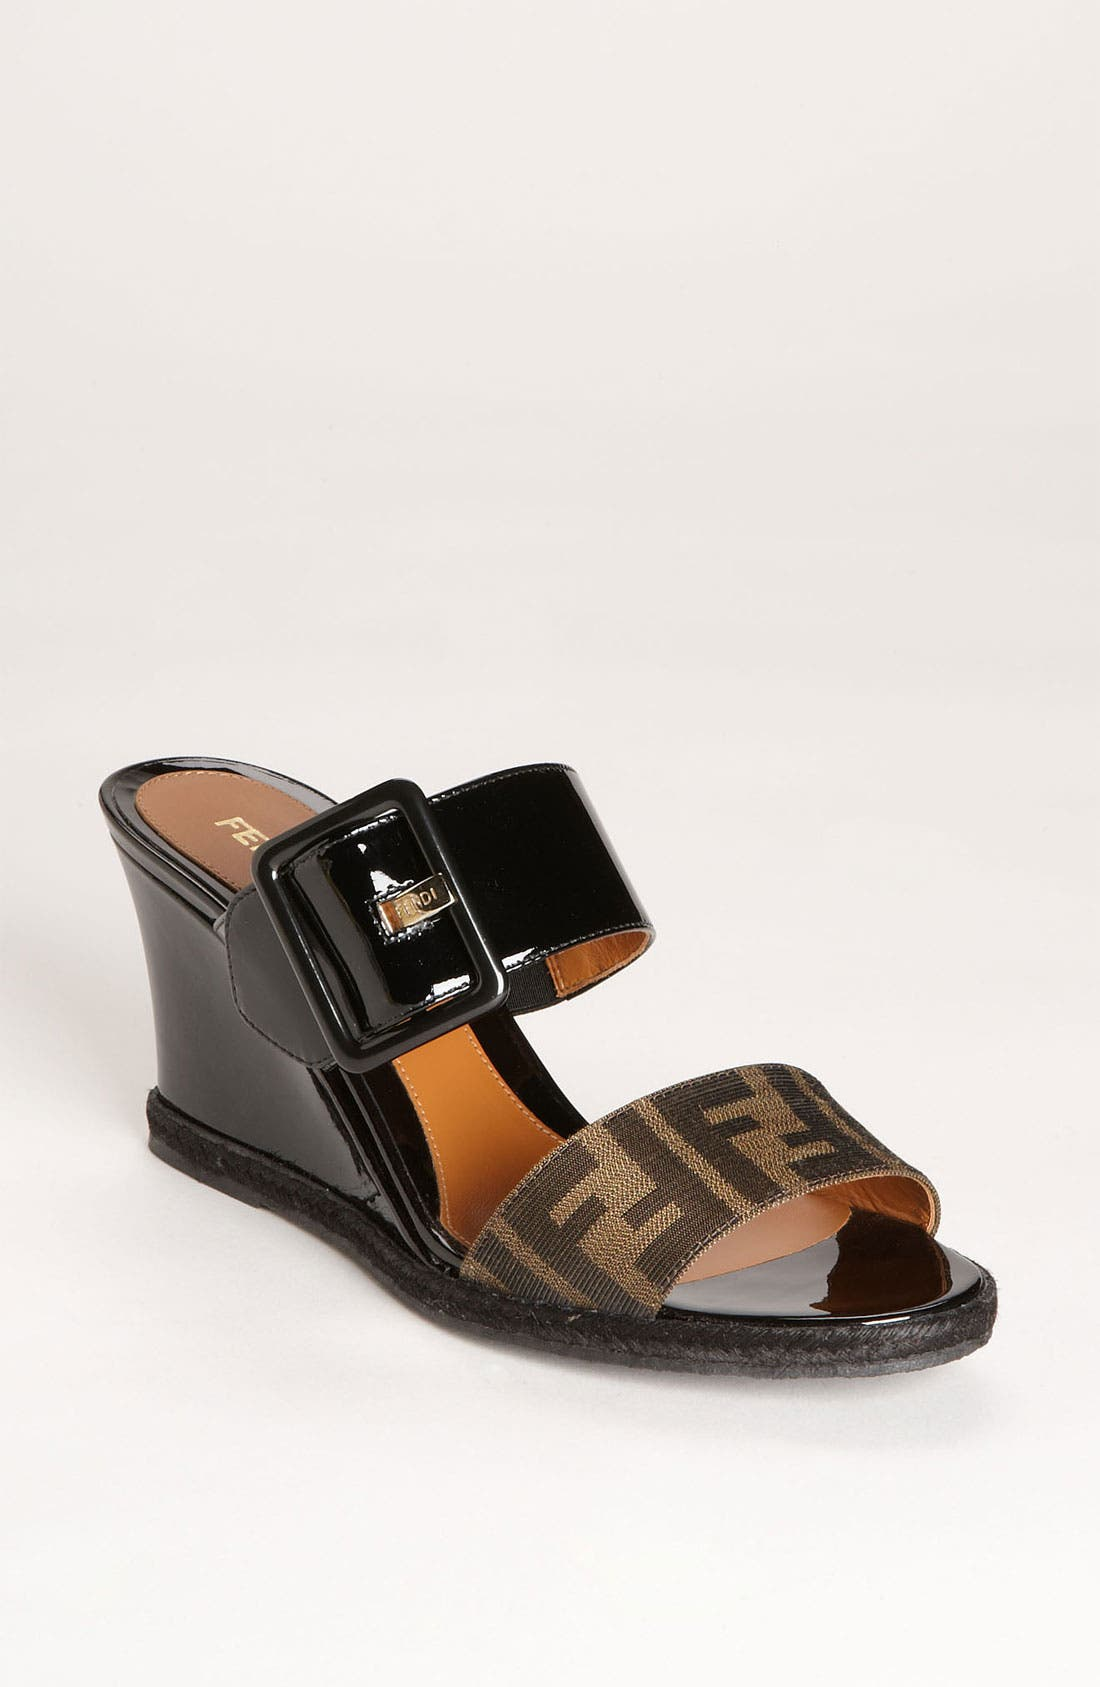 Alternate Image 1 Selected - Fendi 'Vernis' Wedge Sandal (Women)